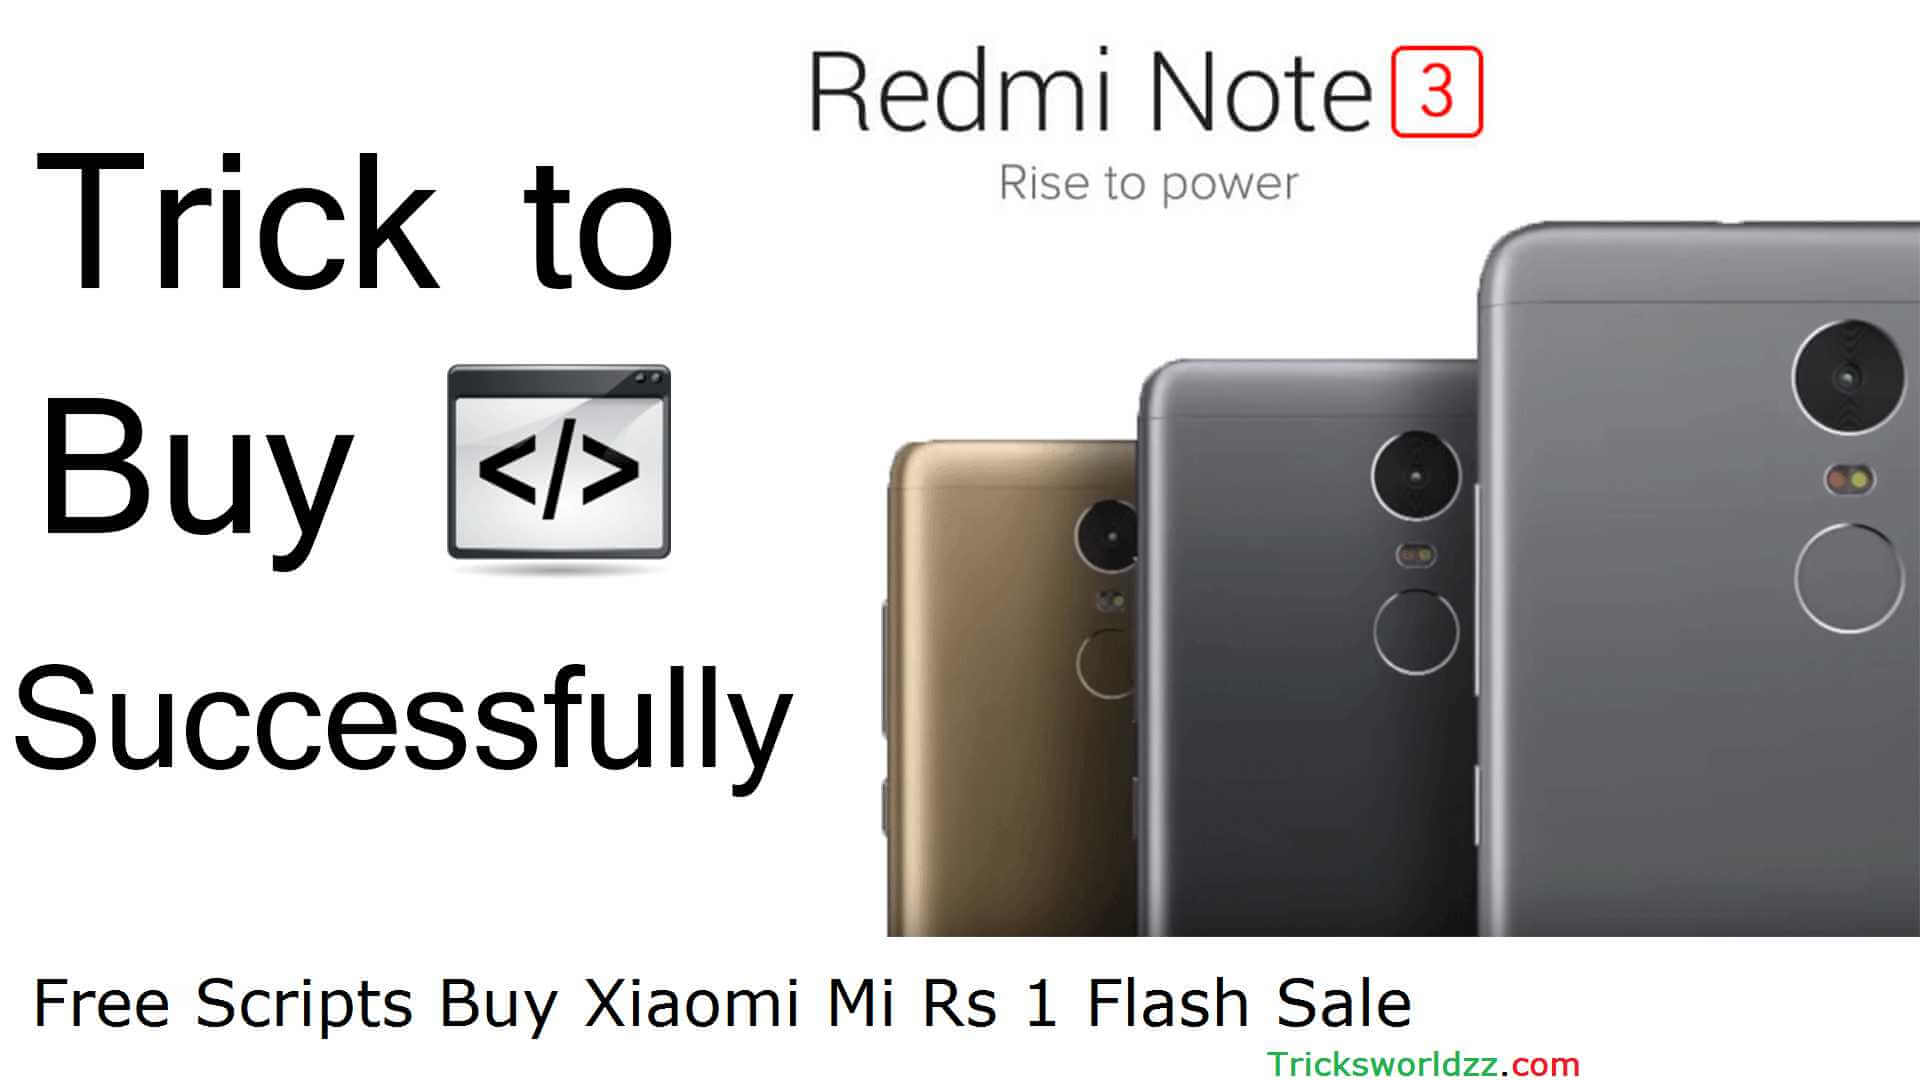 Free Scripts Buy Xiaomi Mi Rs 1 Flash Sale